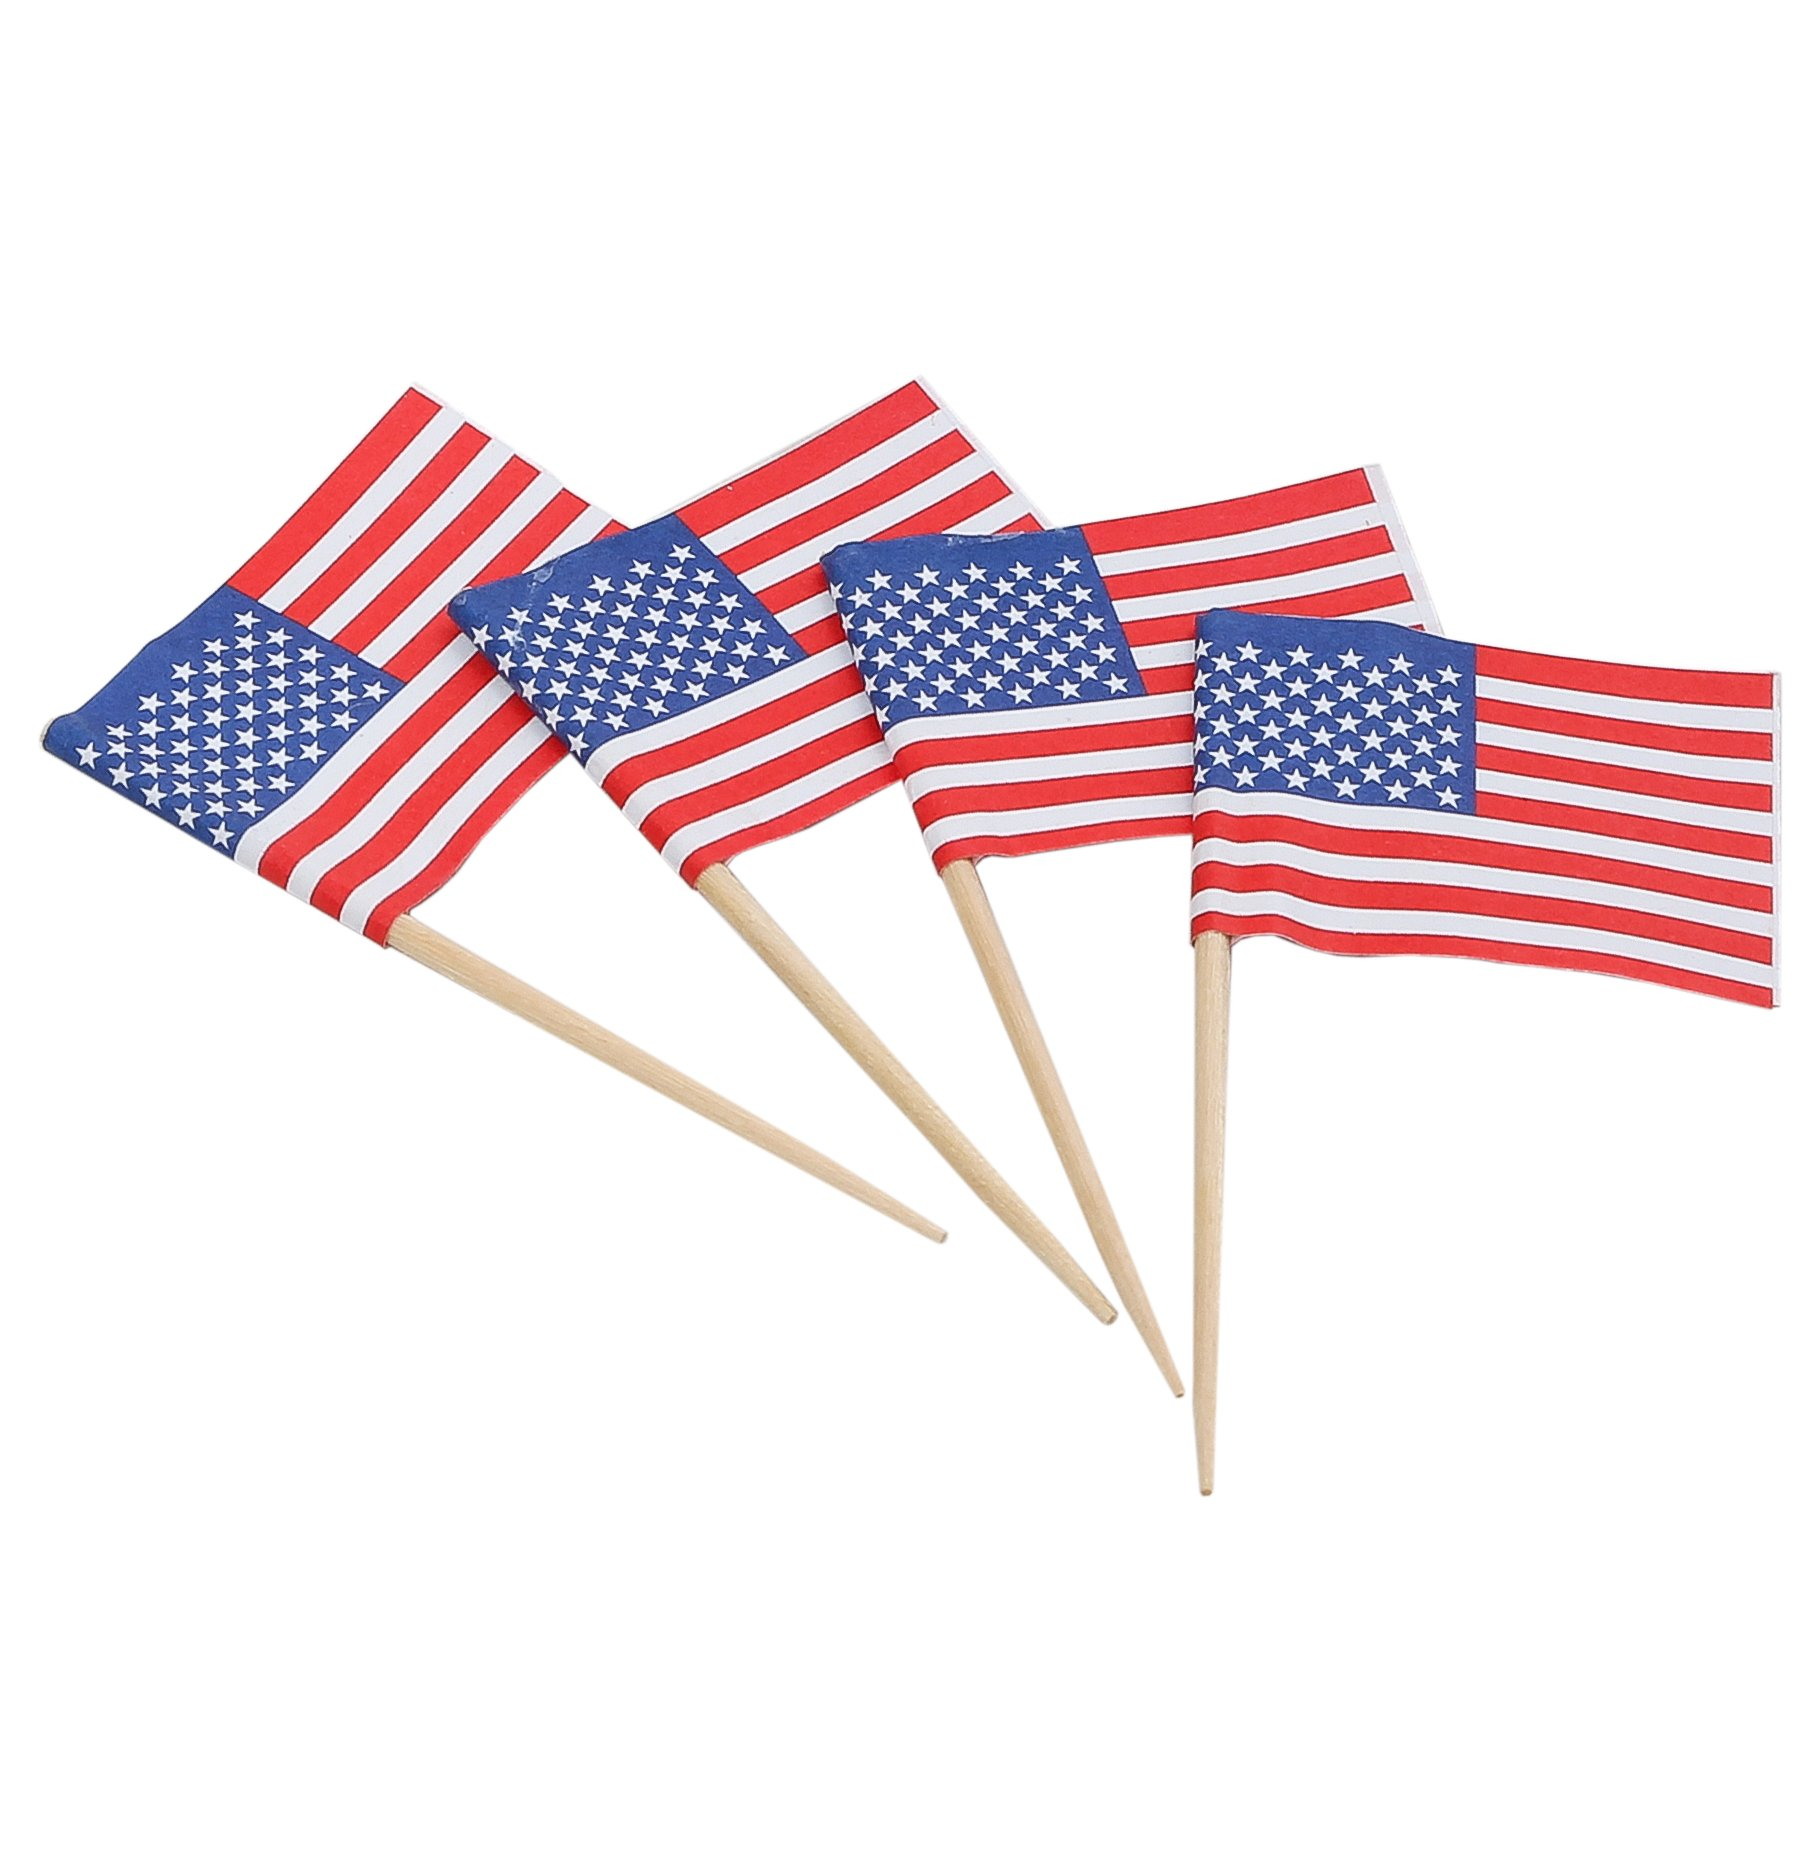 KingSeal American Flag Toothpicks, 2.5 Inch - Master Case of 100 Packs of 144 per Case, US Flag Picks for Sandwiches, Appetizers, Cupcake Toppers, and More!